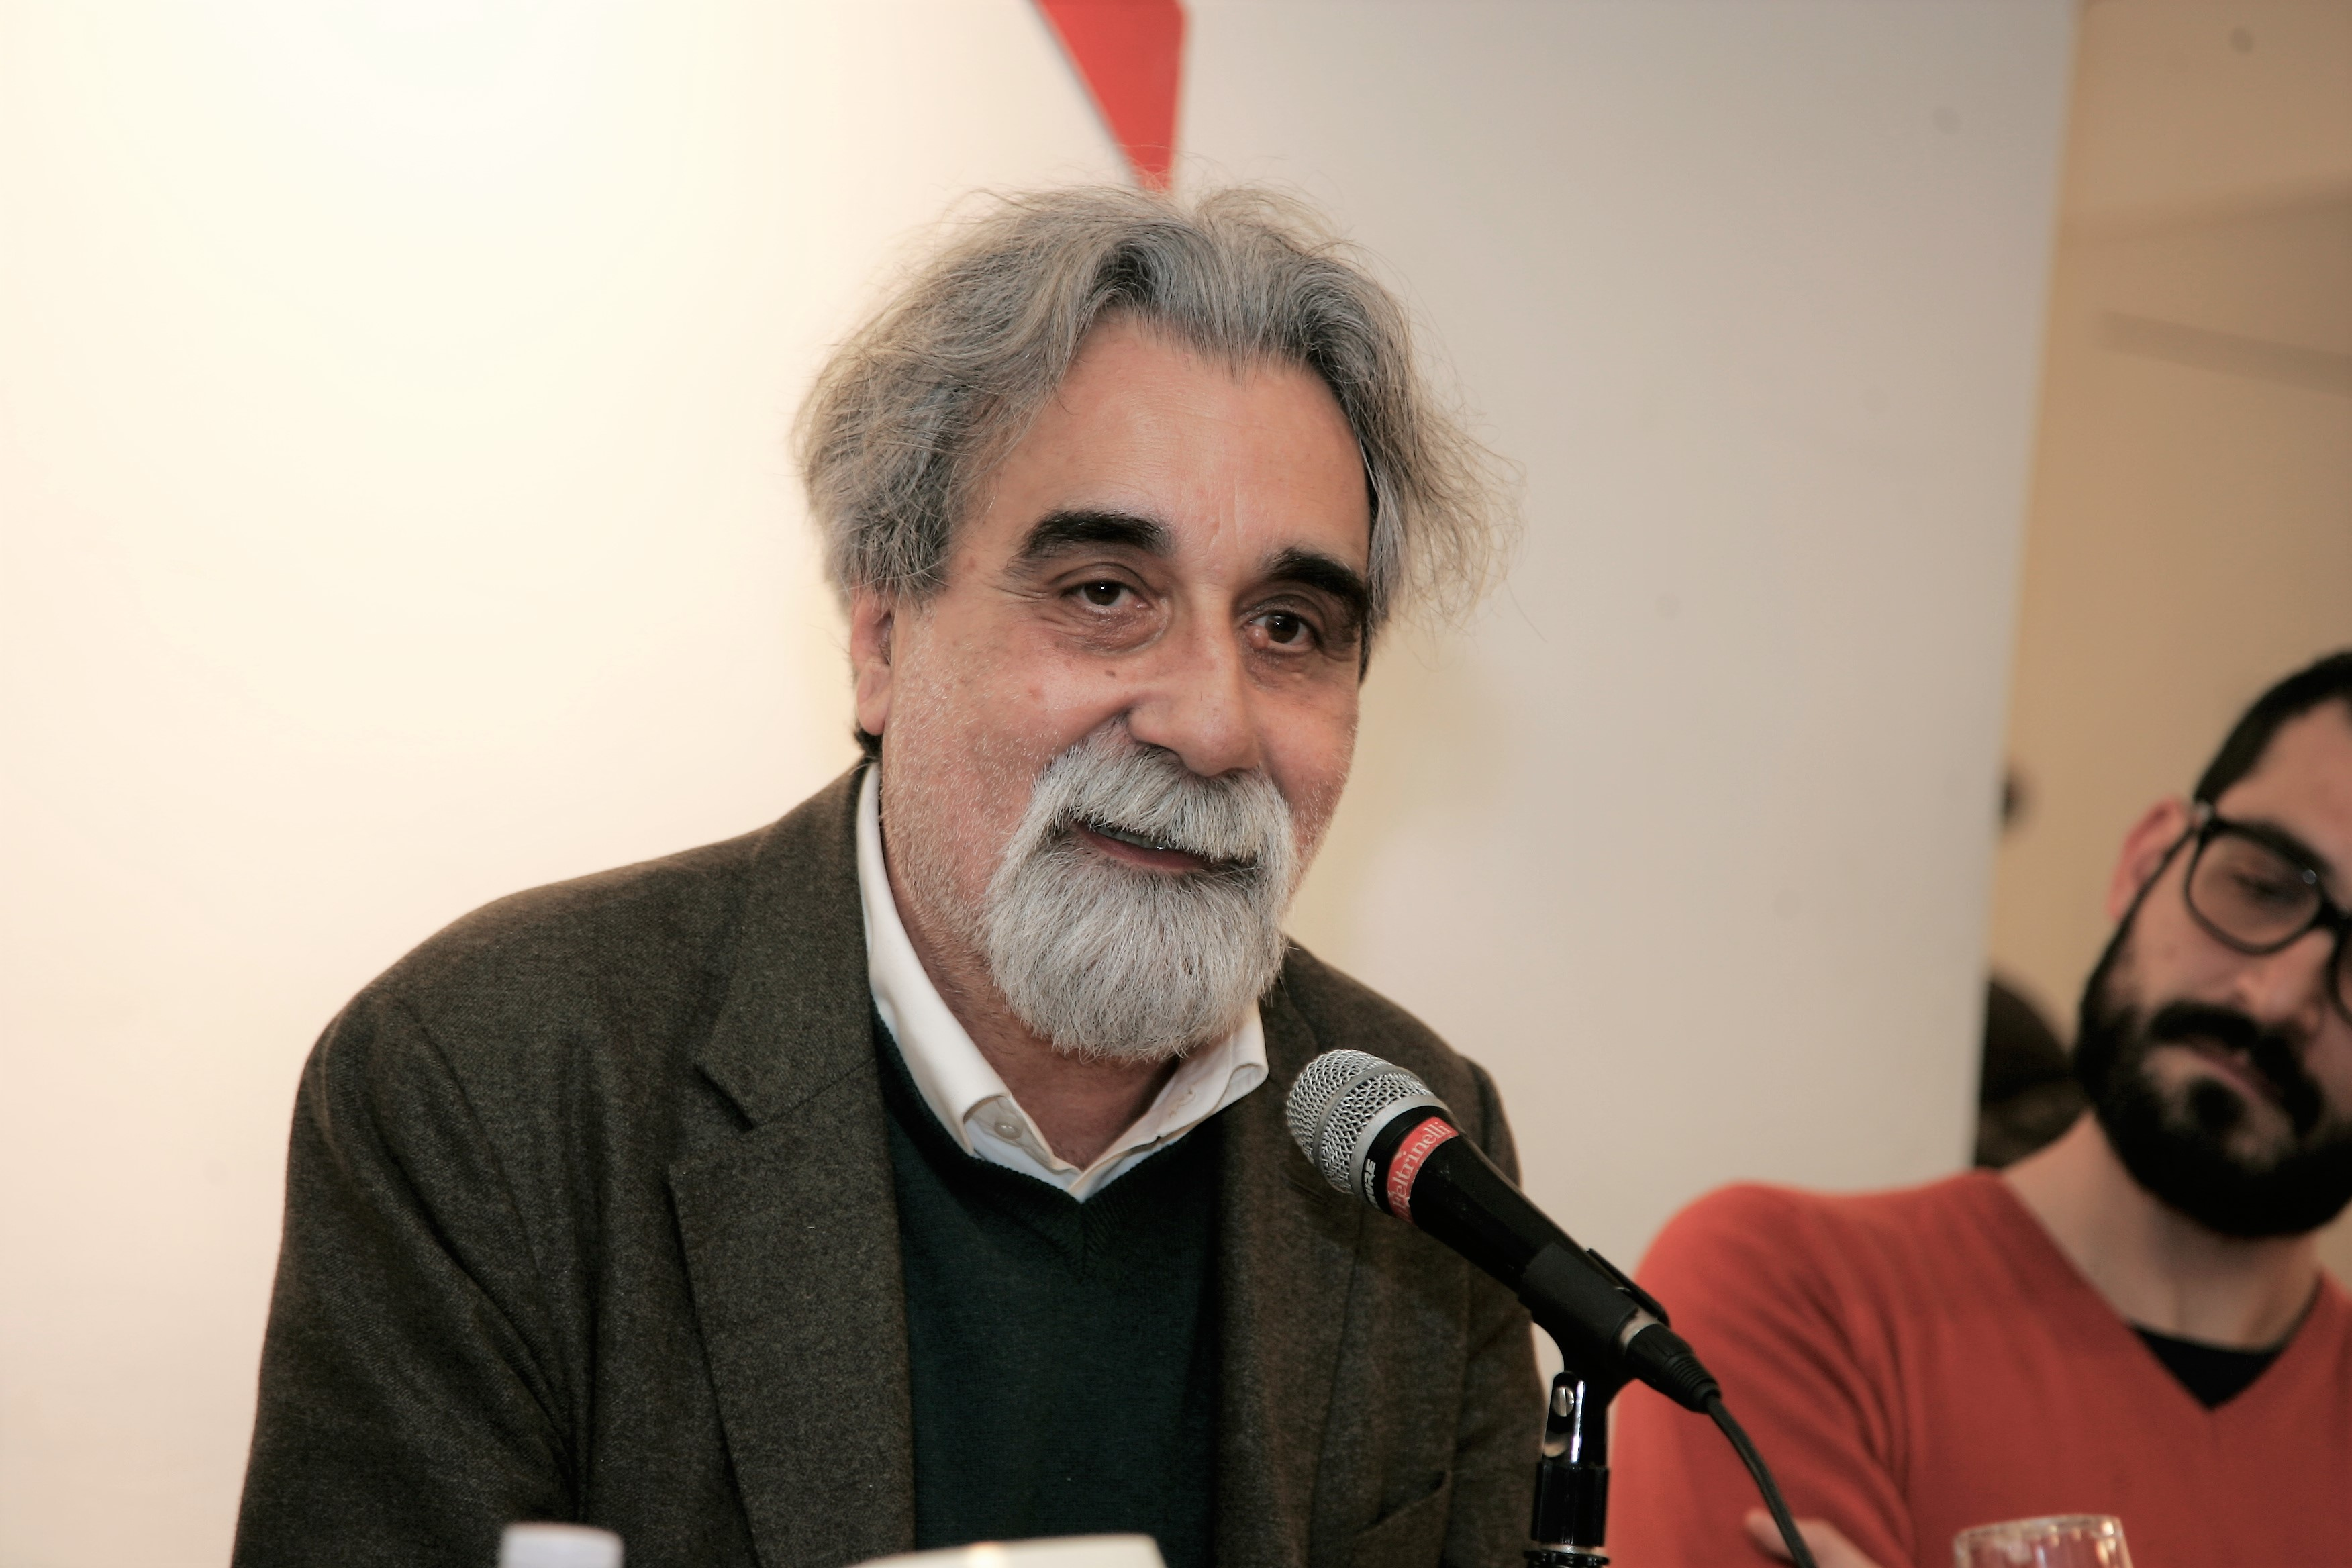 Peppe_Vessicchio